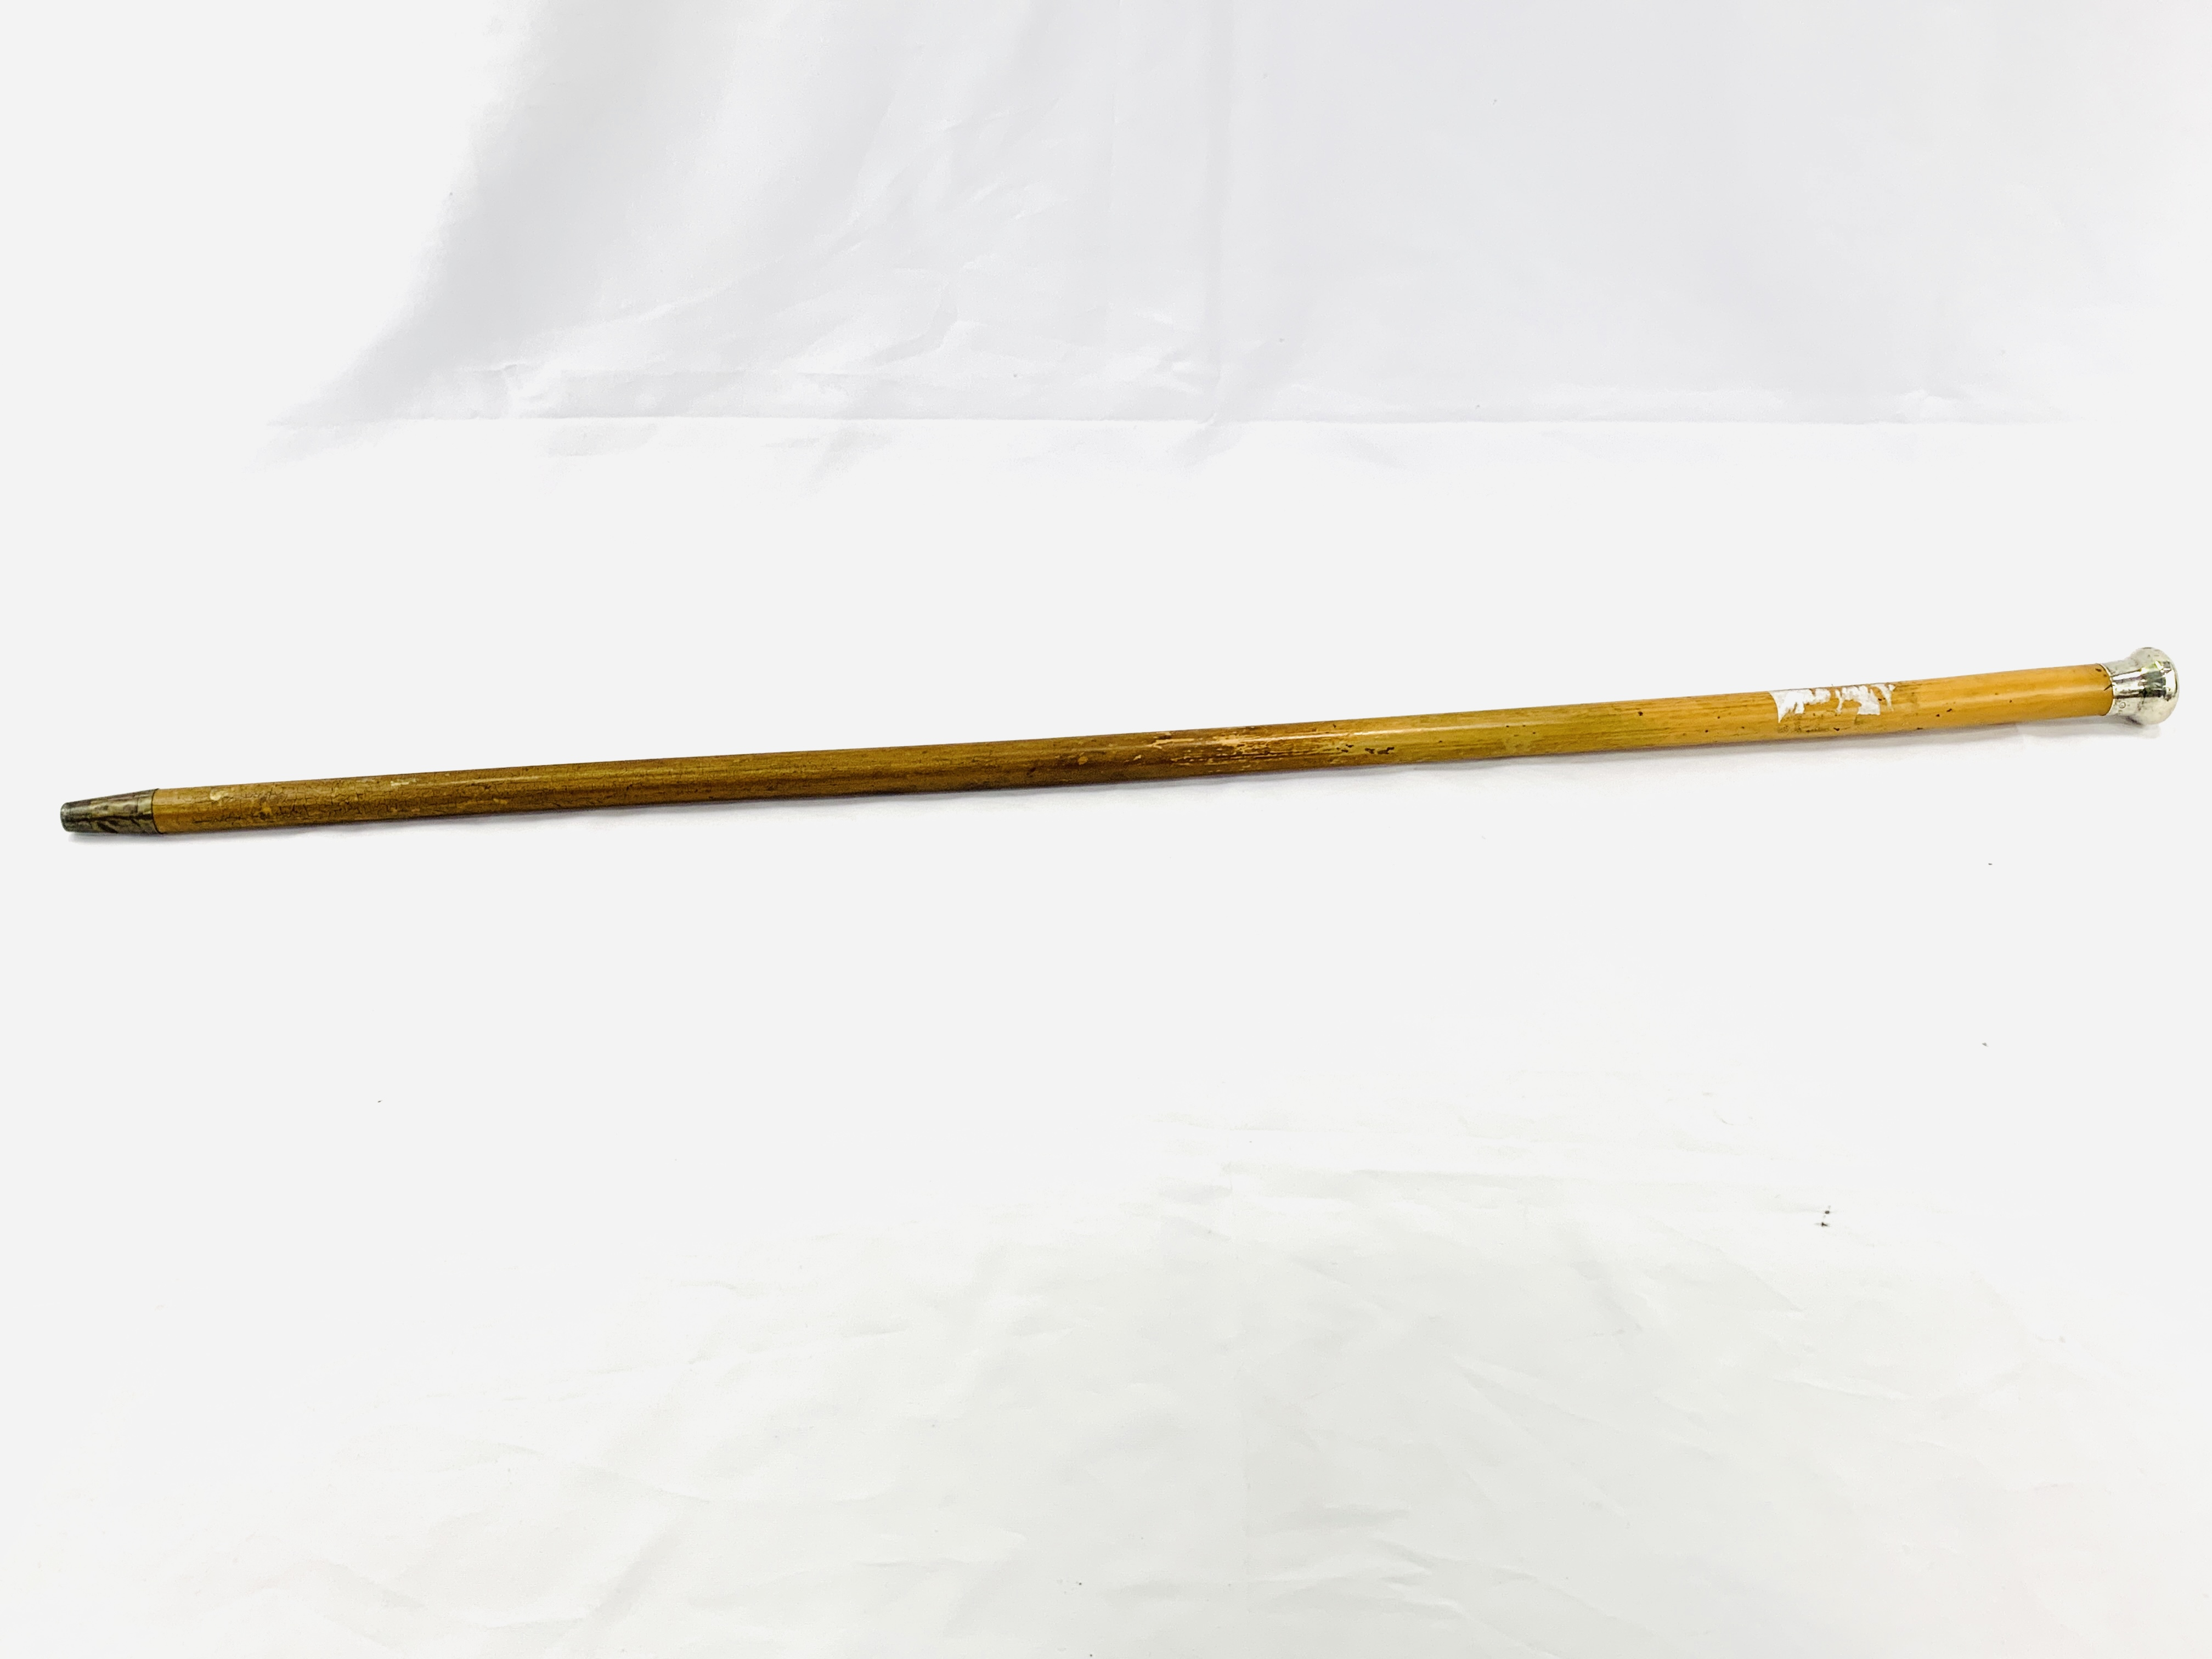 Malacca cane with hallmarked silver top - Image 2 of 4